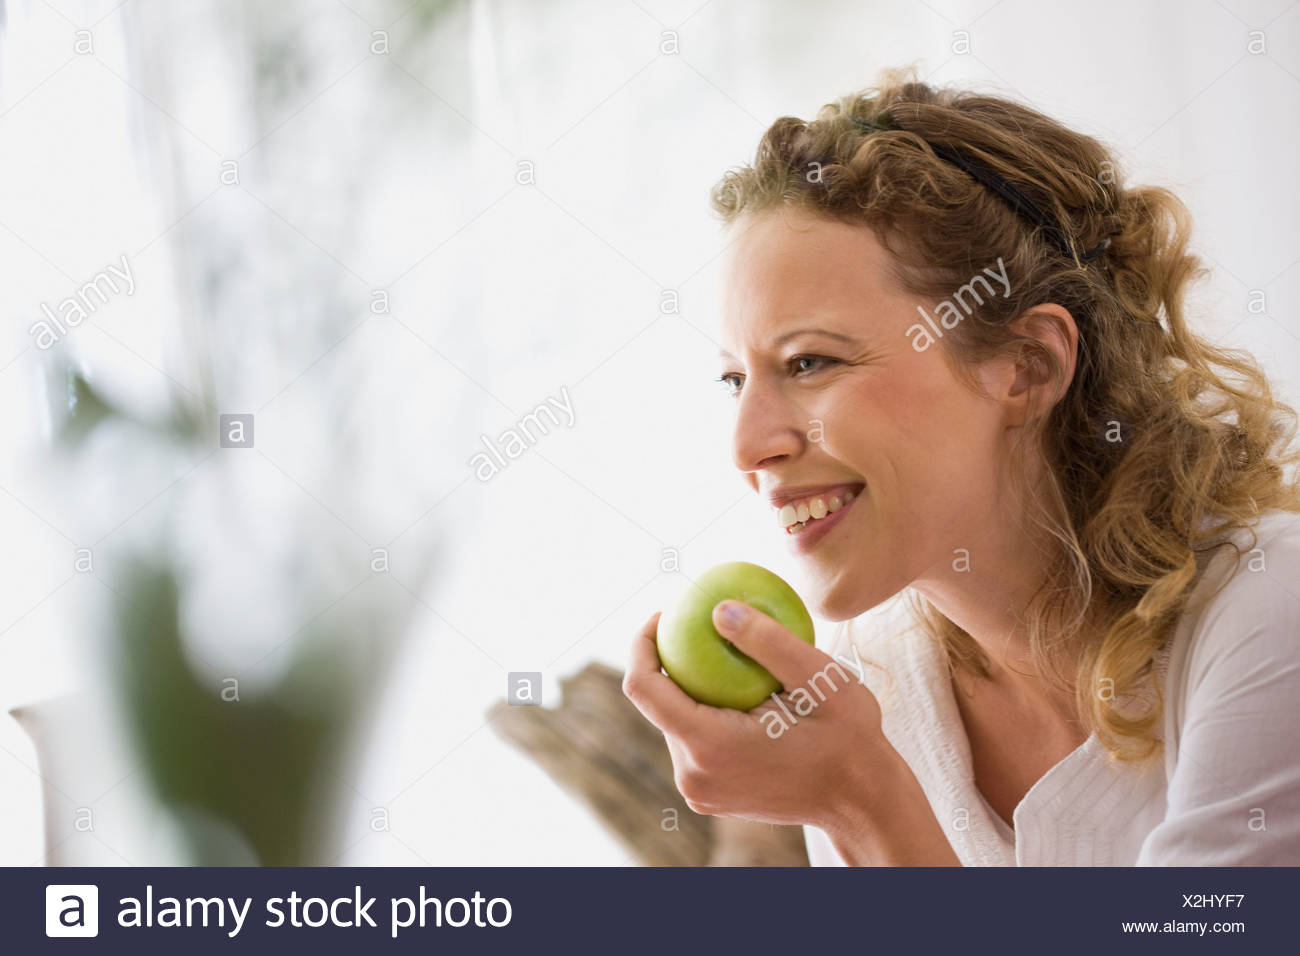 Middle-aged woman eating a apple Banque D'Images